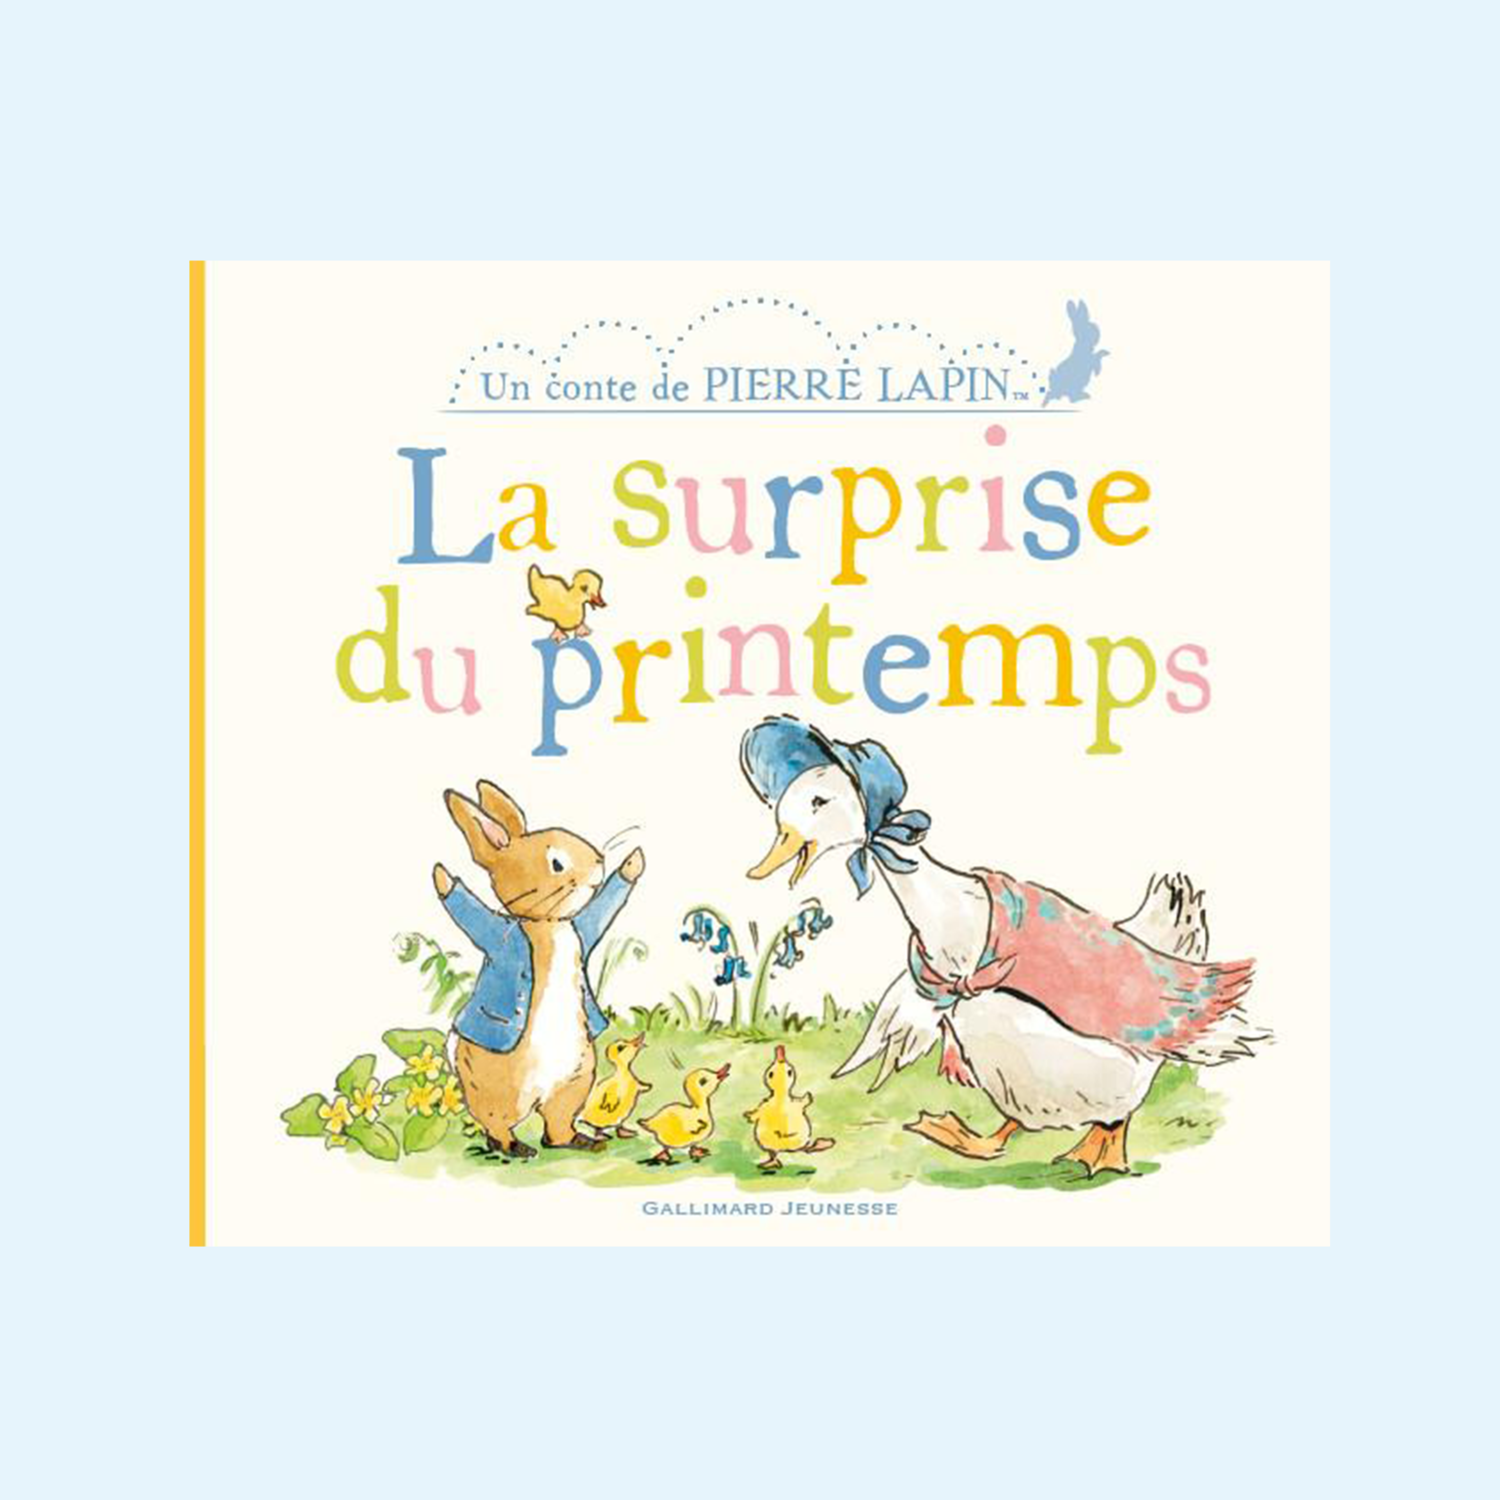 La surprise du printemps